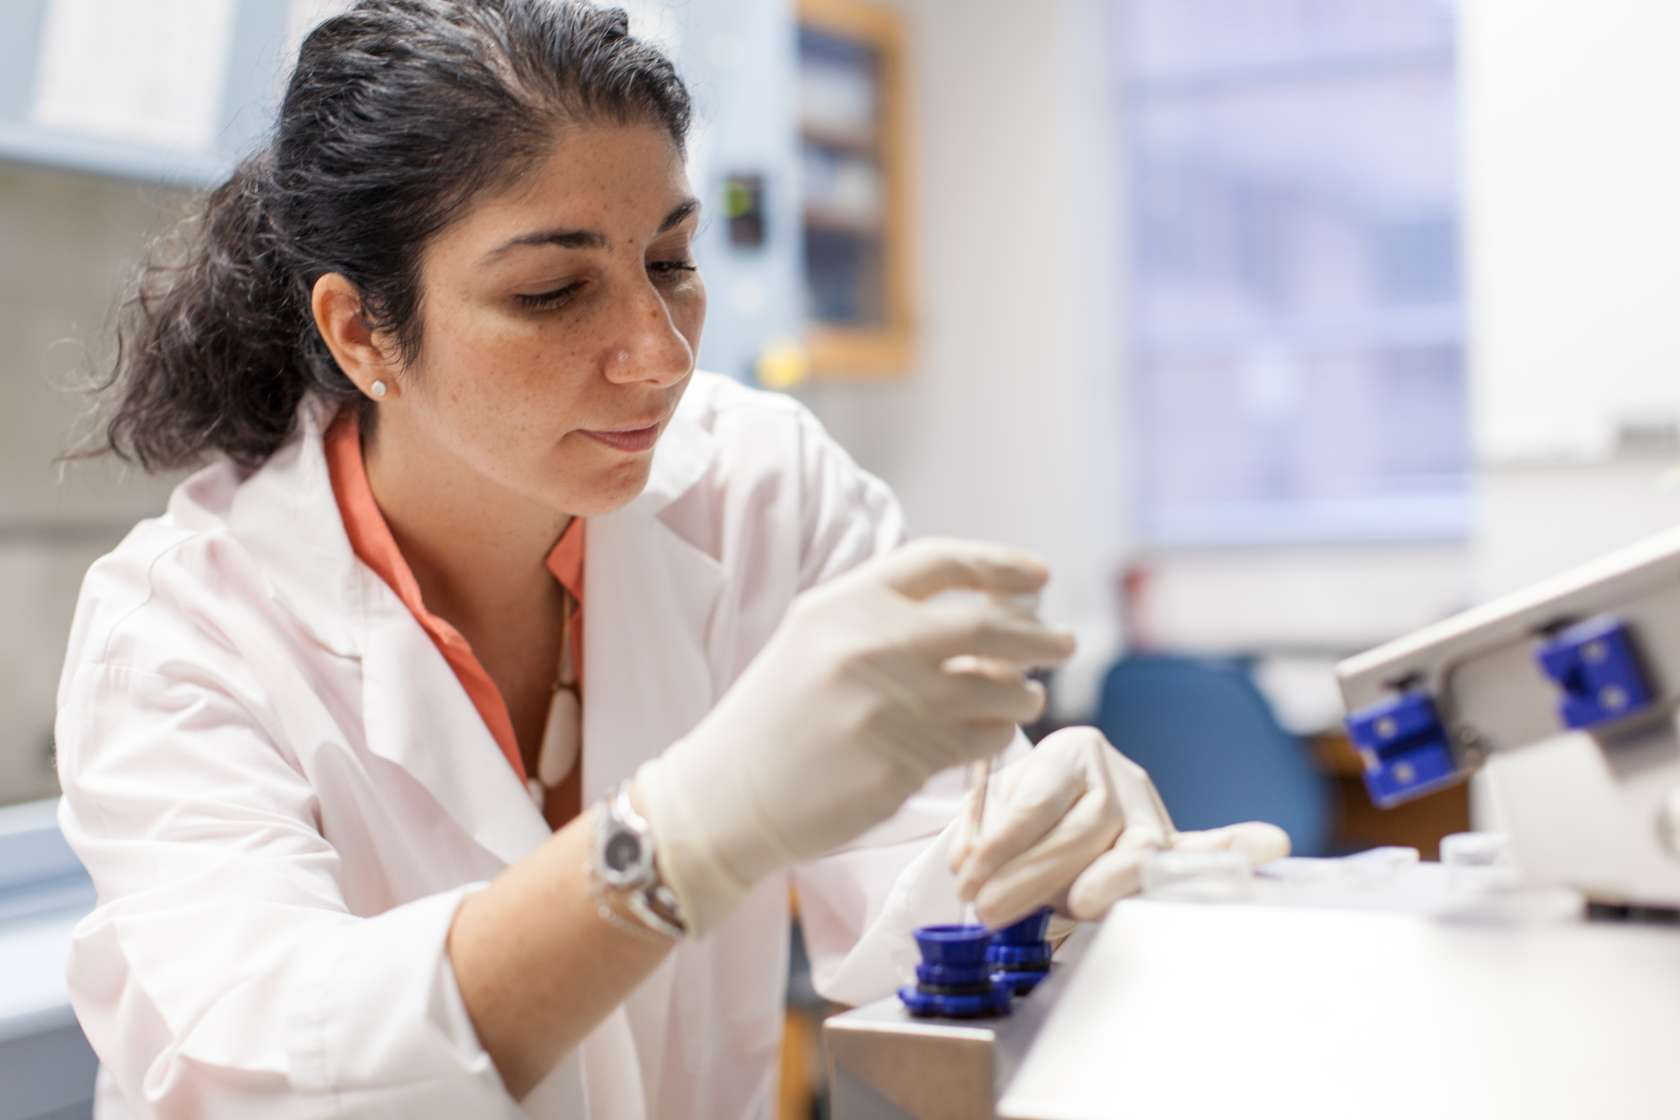 A researcher uses a pipette